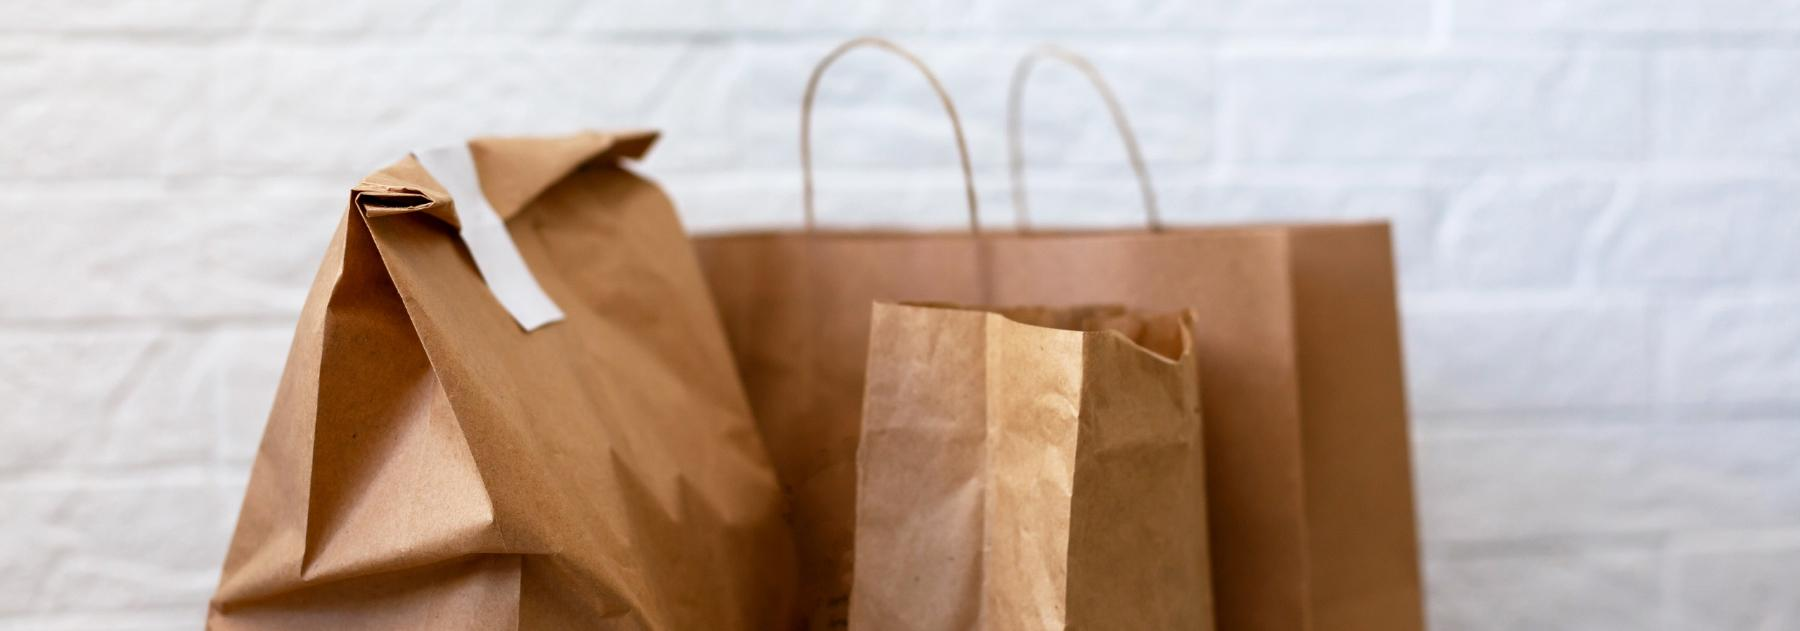 Brown paper bags on a table, signifying food to go